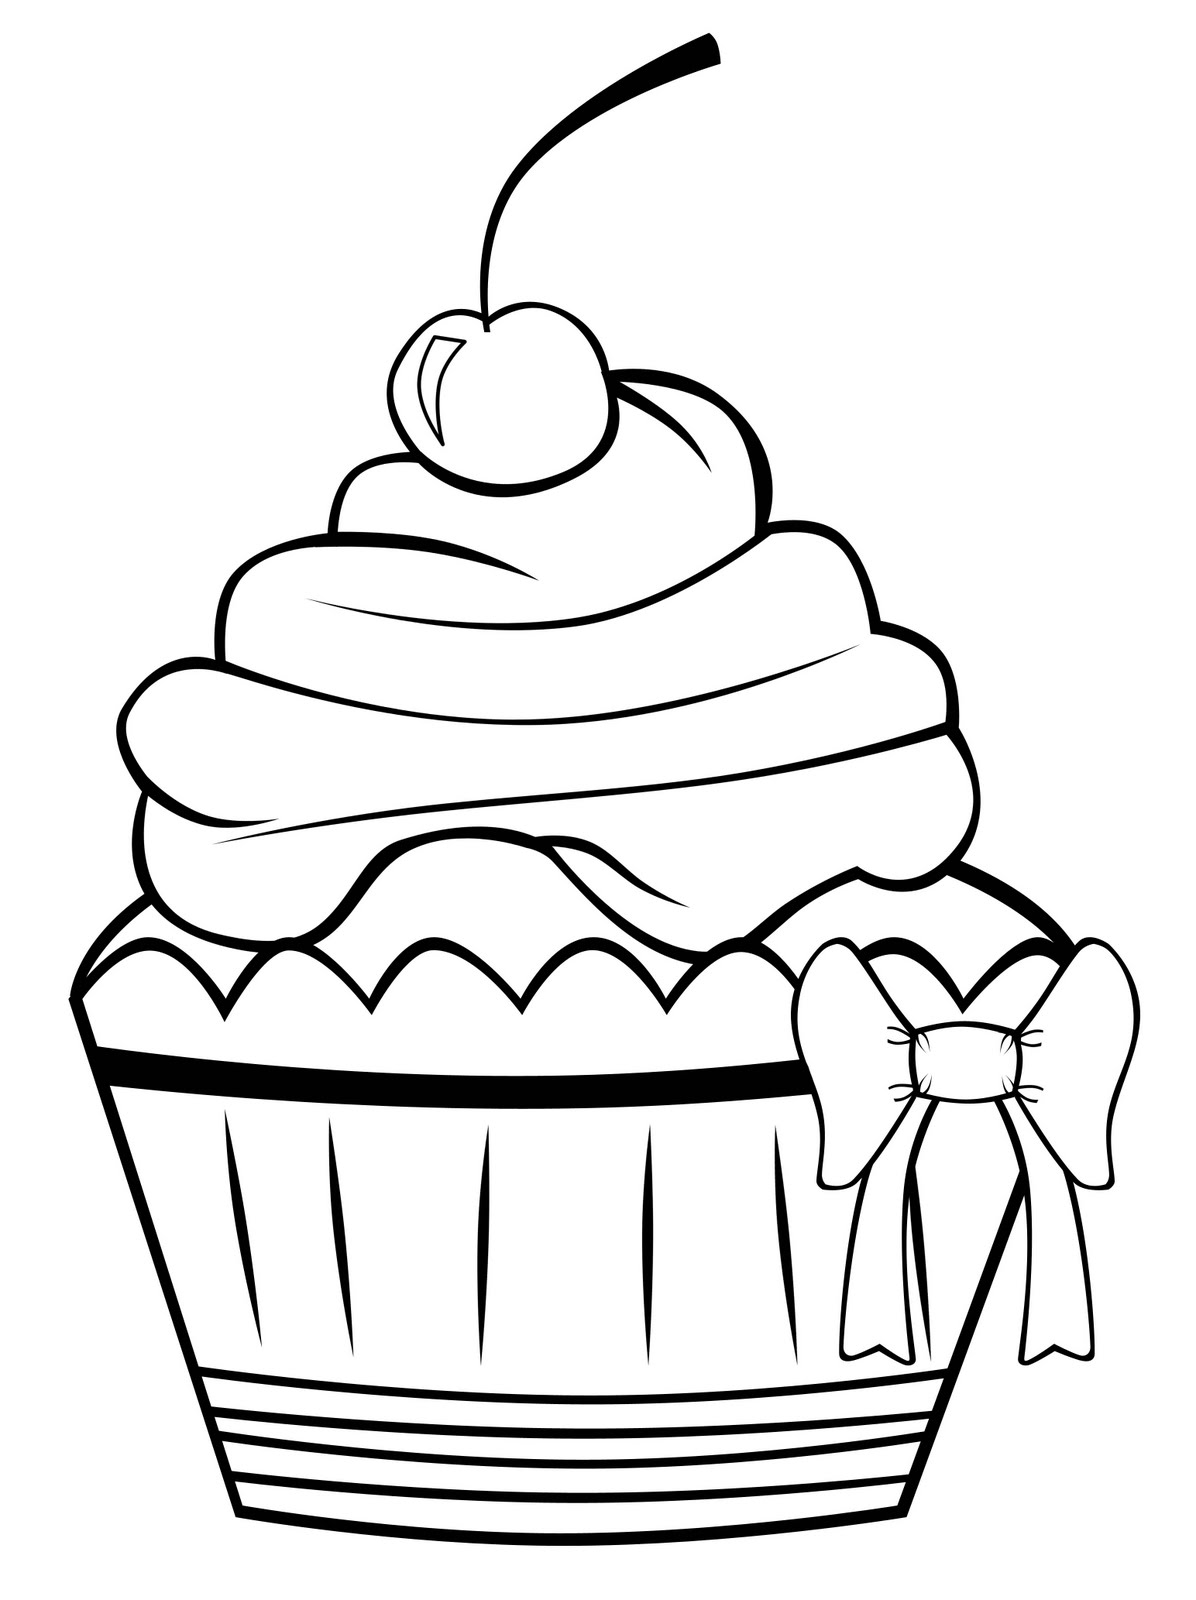 cup cake coloring pictures cake coloring page coloring home coloring cup pictures cake